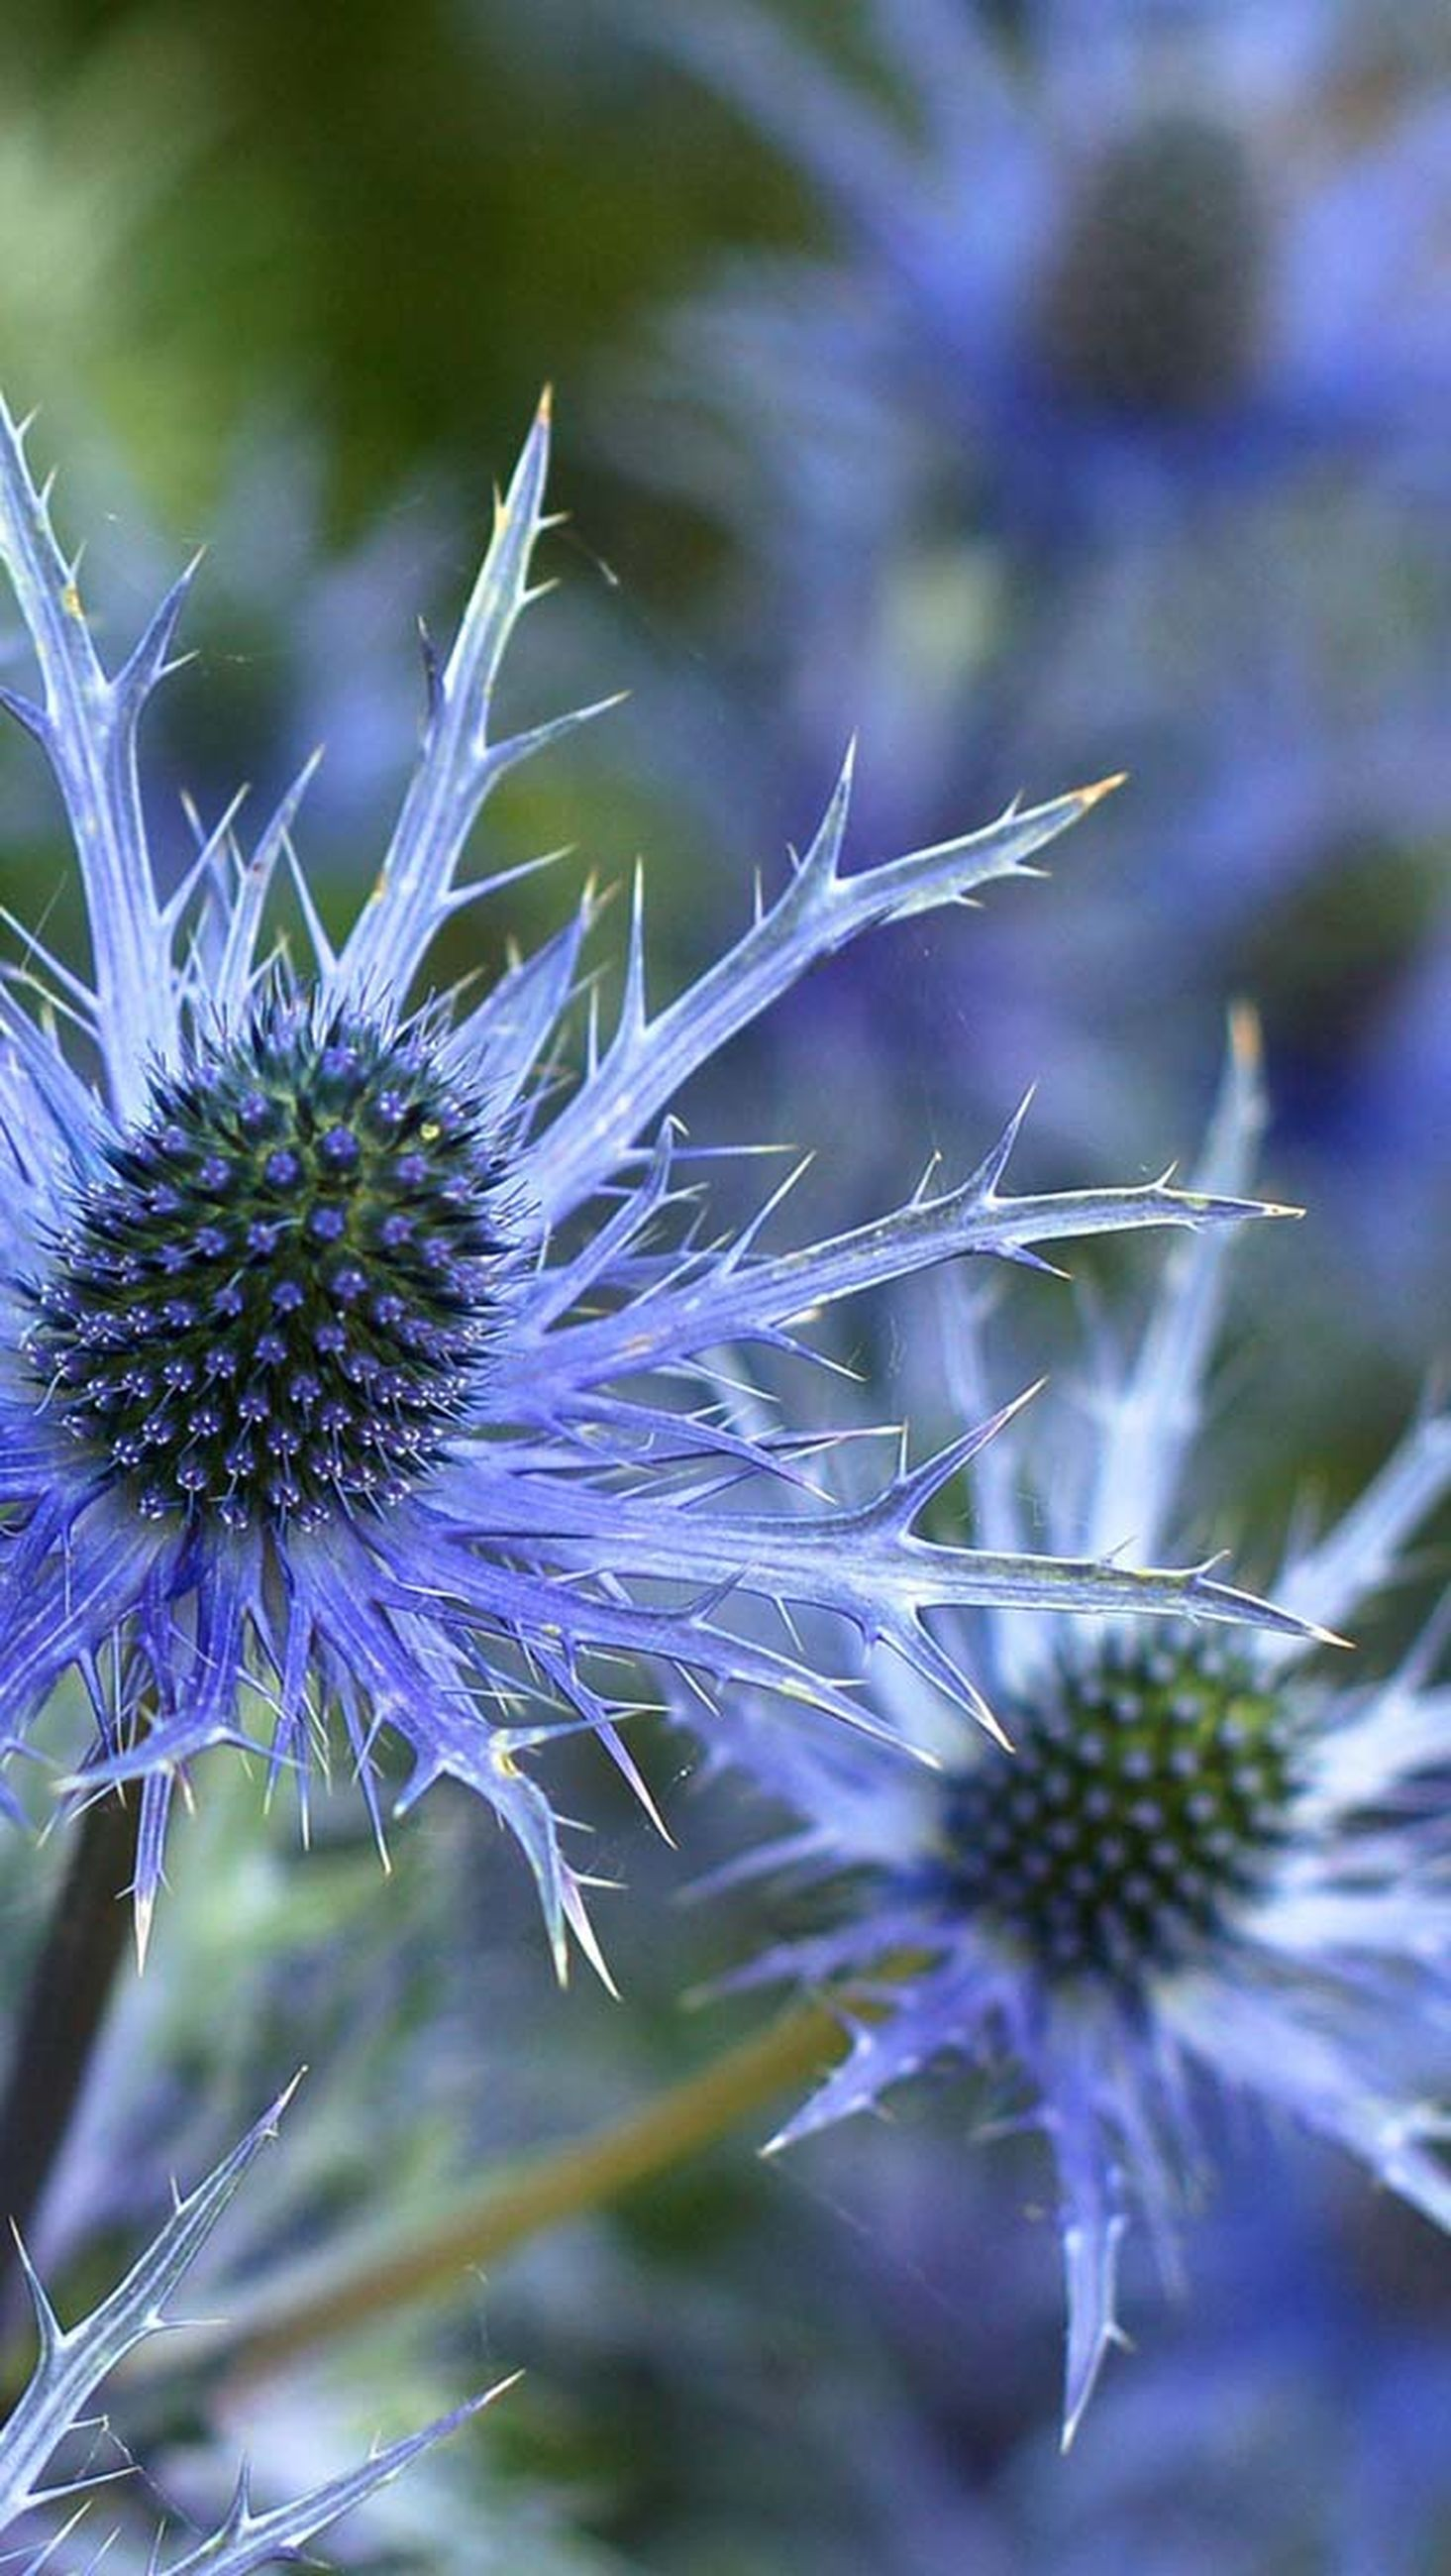 flower, fragility, freshness, growth, close-up, focus on foreground, plant, beauty in nature, flower head, nature, selective focus, purple, blooming, petal, stem, day, outdoors, no people, in bloom, wildflower